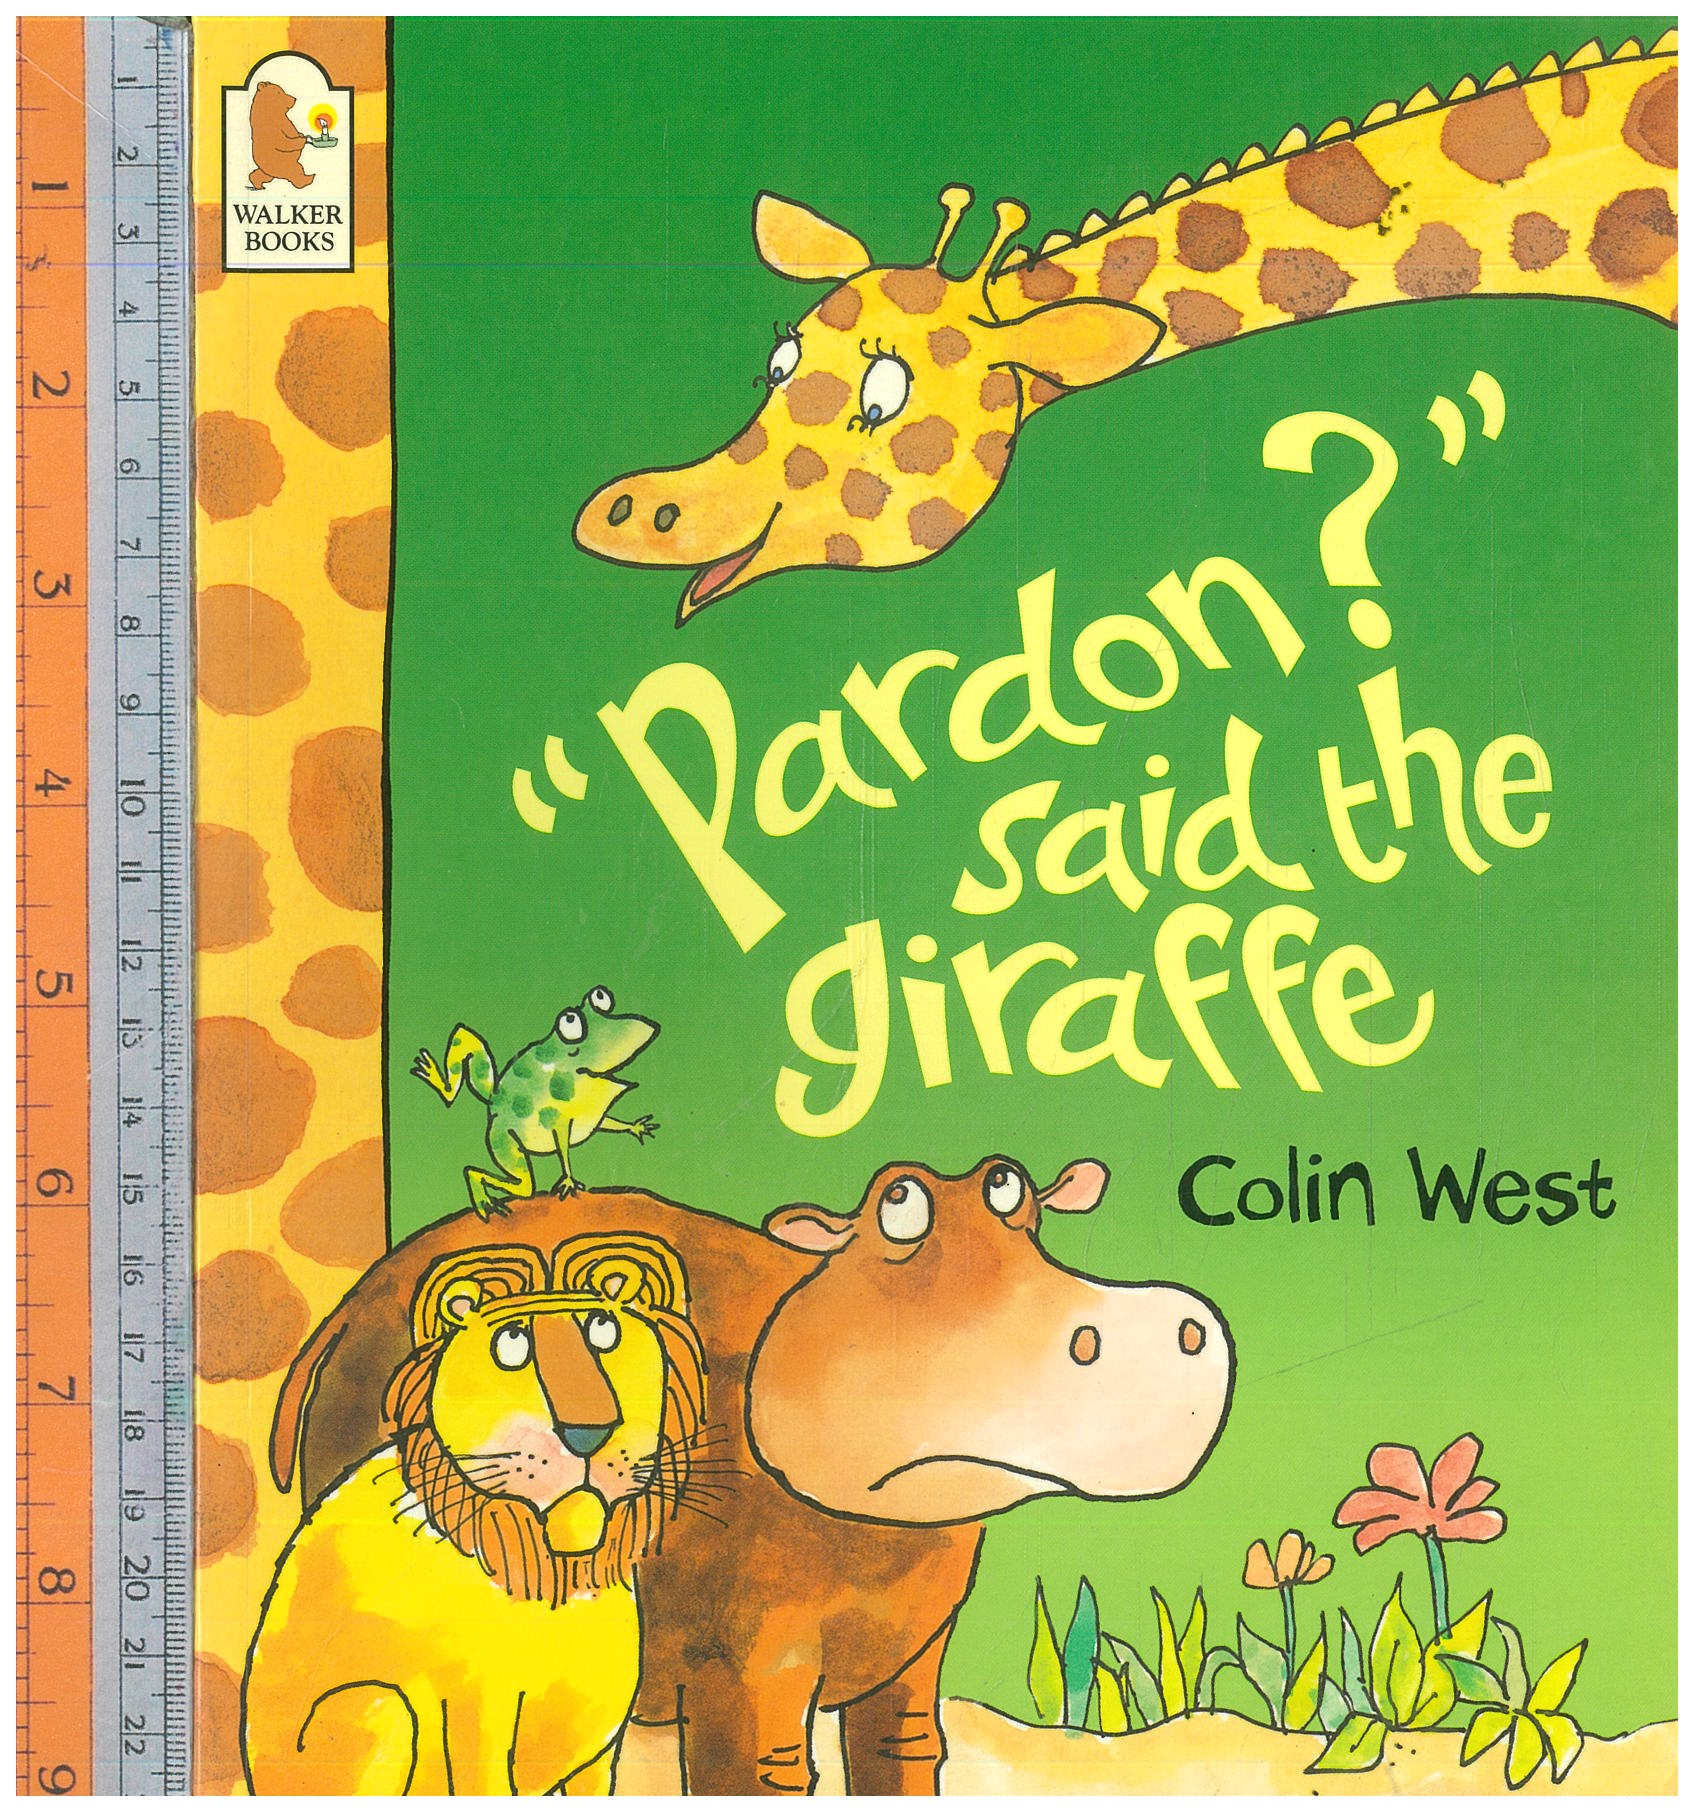 Pardon said the giraffe